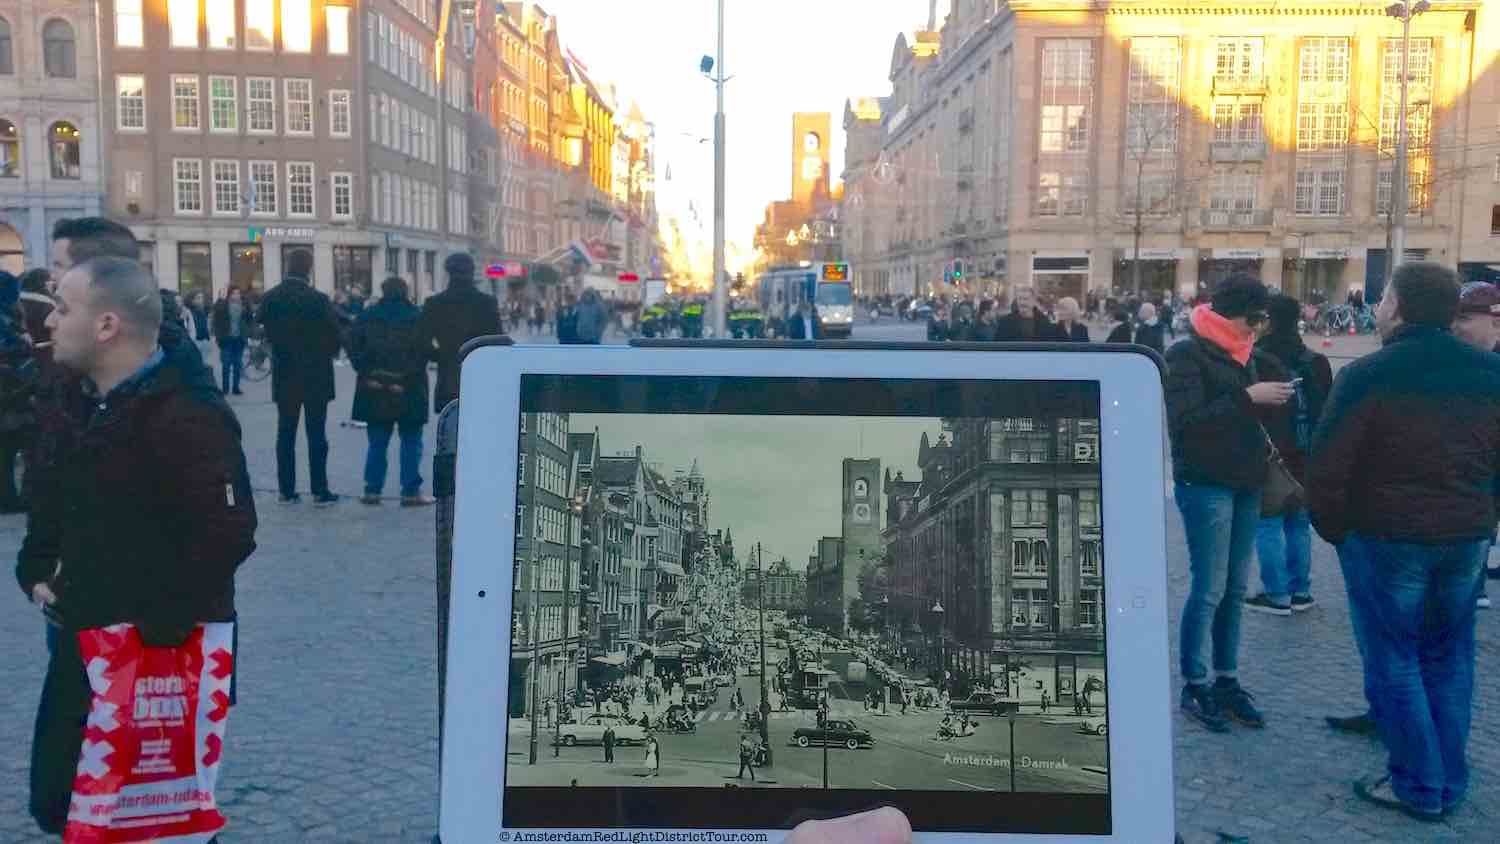 Amsterdam Red Light District Now and Then: Dam Square